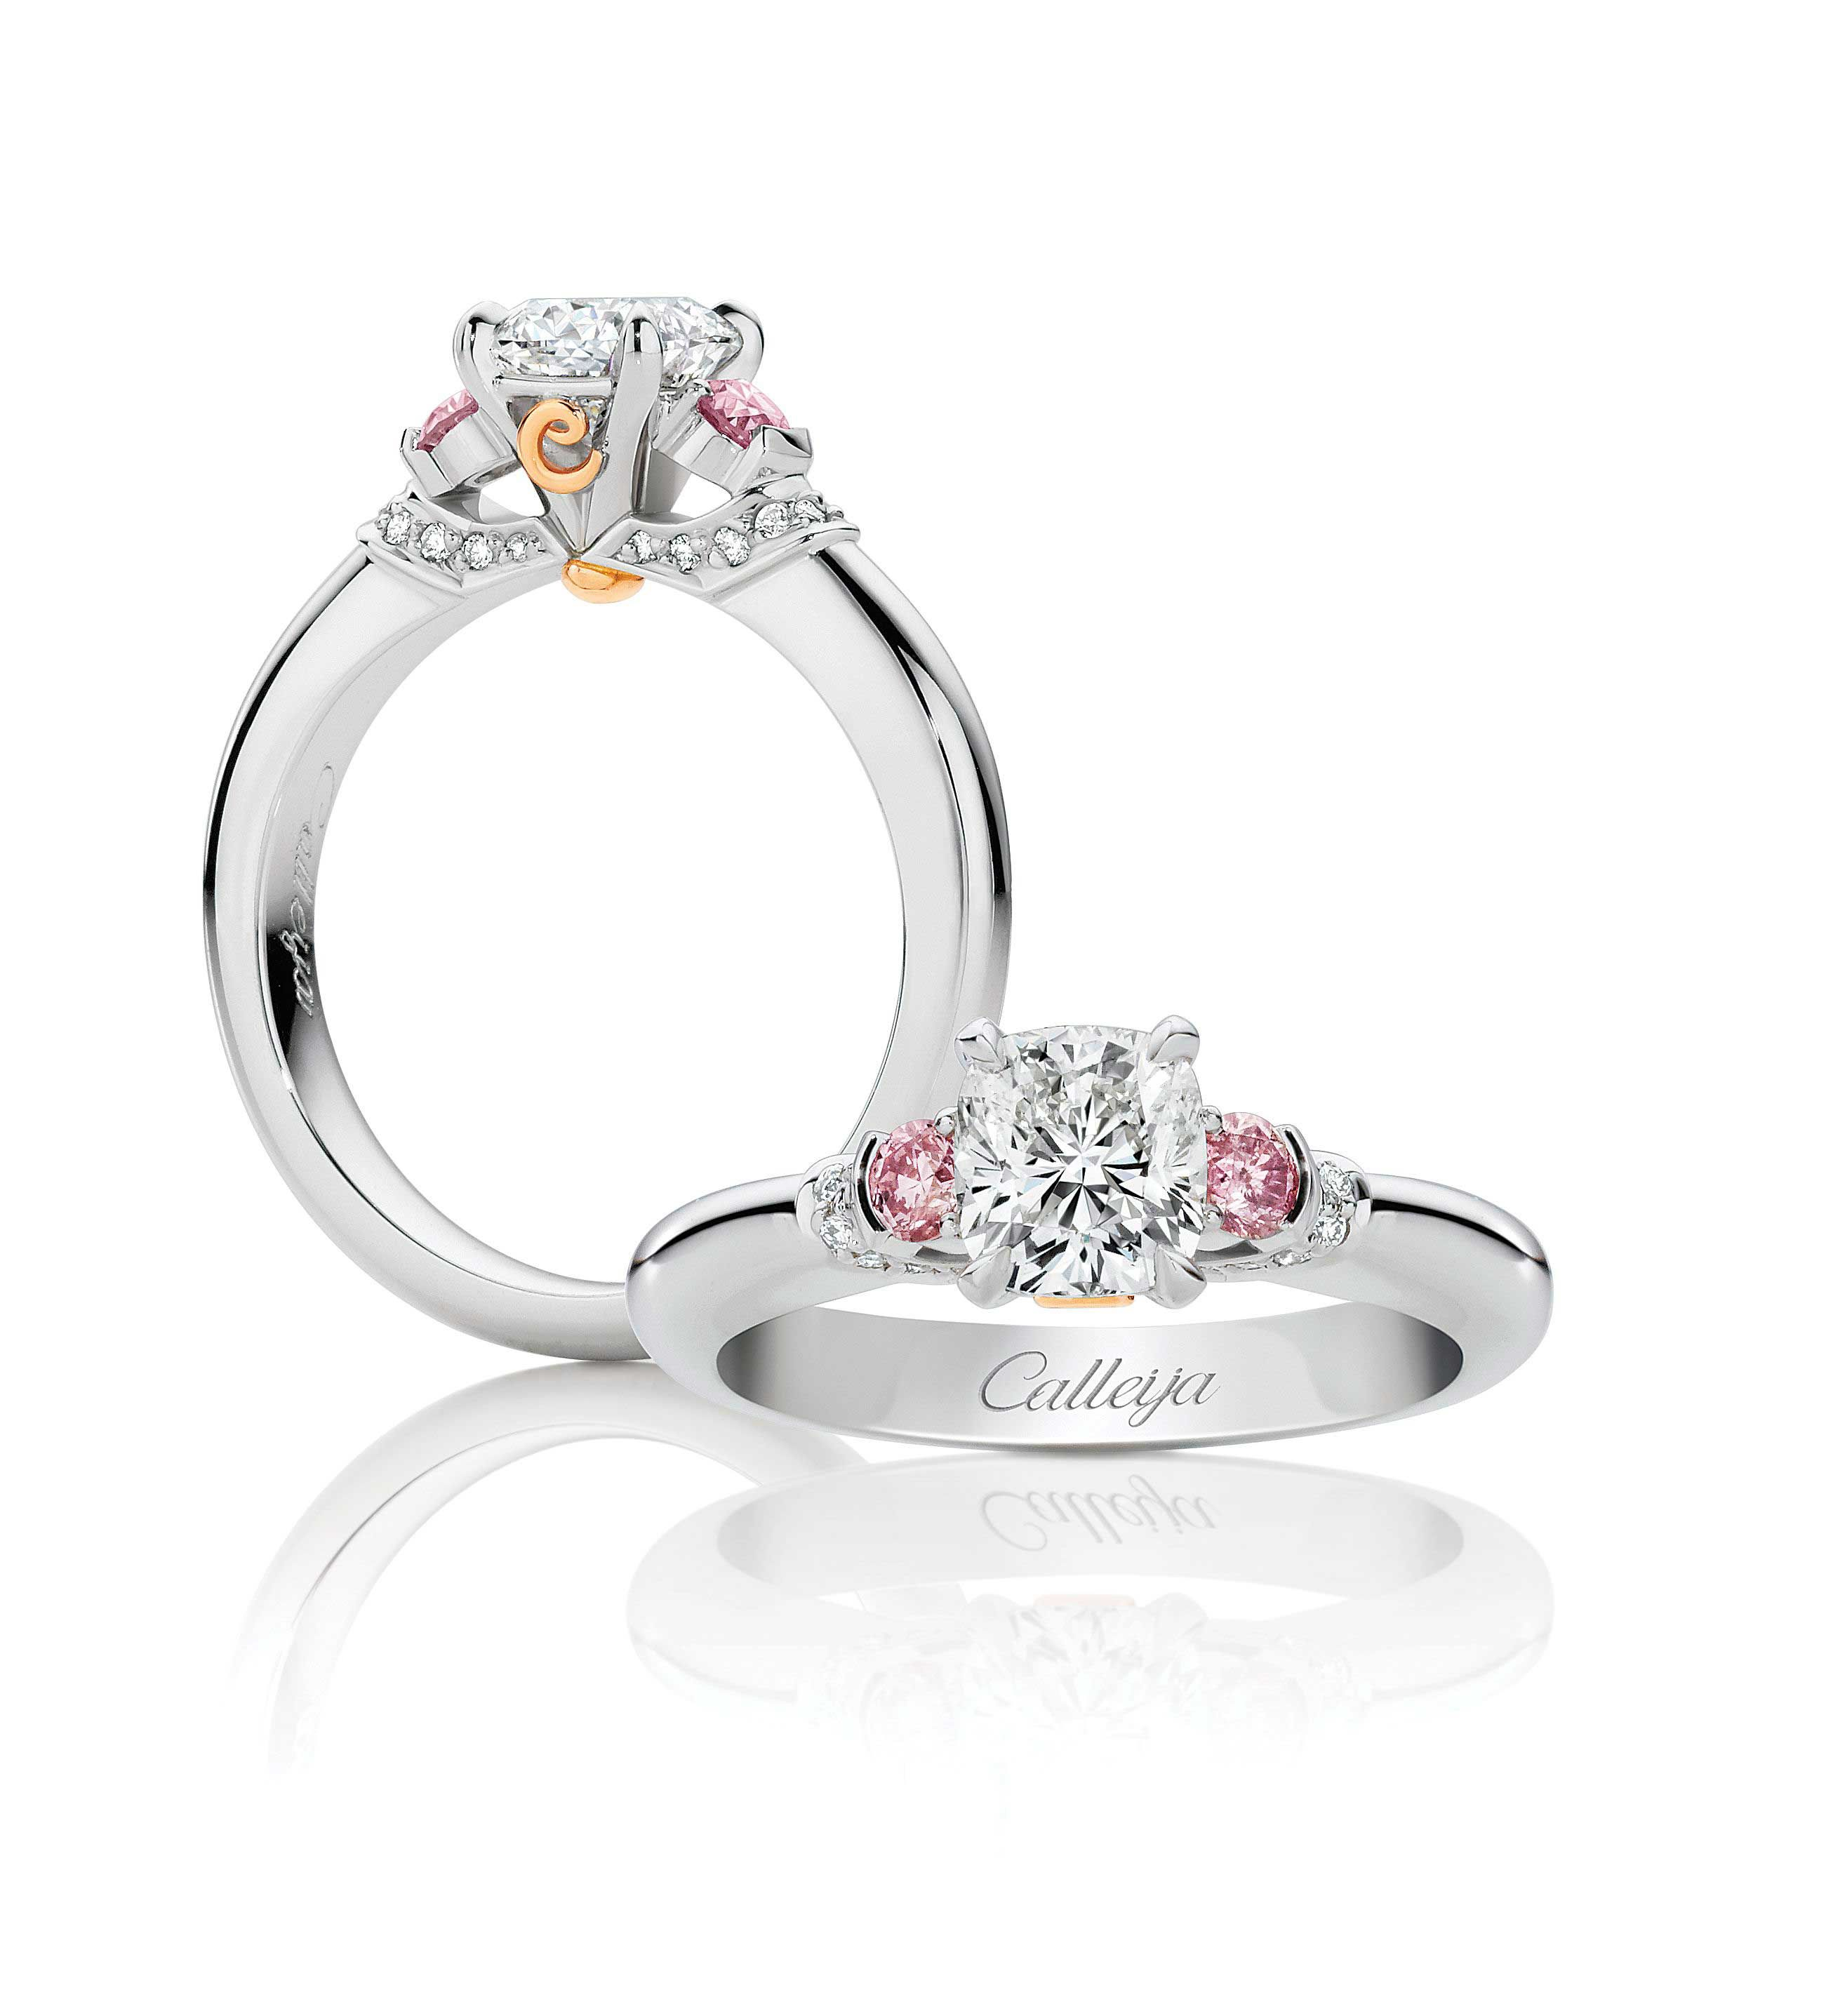 A beautifully handcrafted 1.52 ct round brilliant Calleija